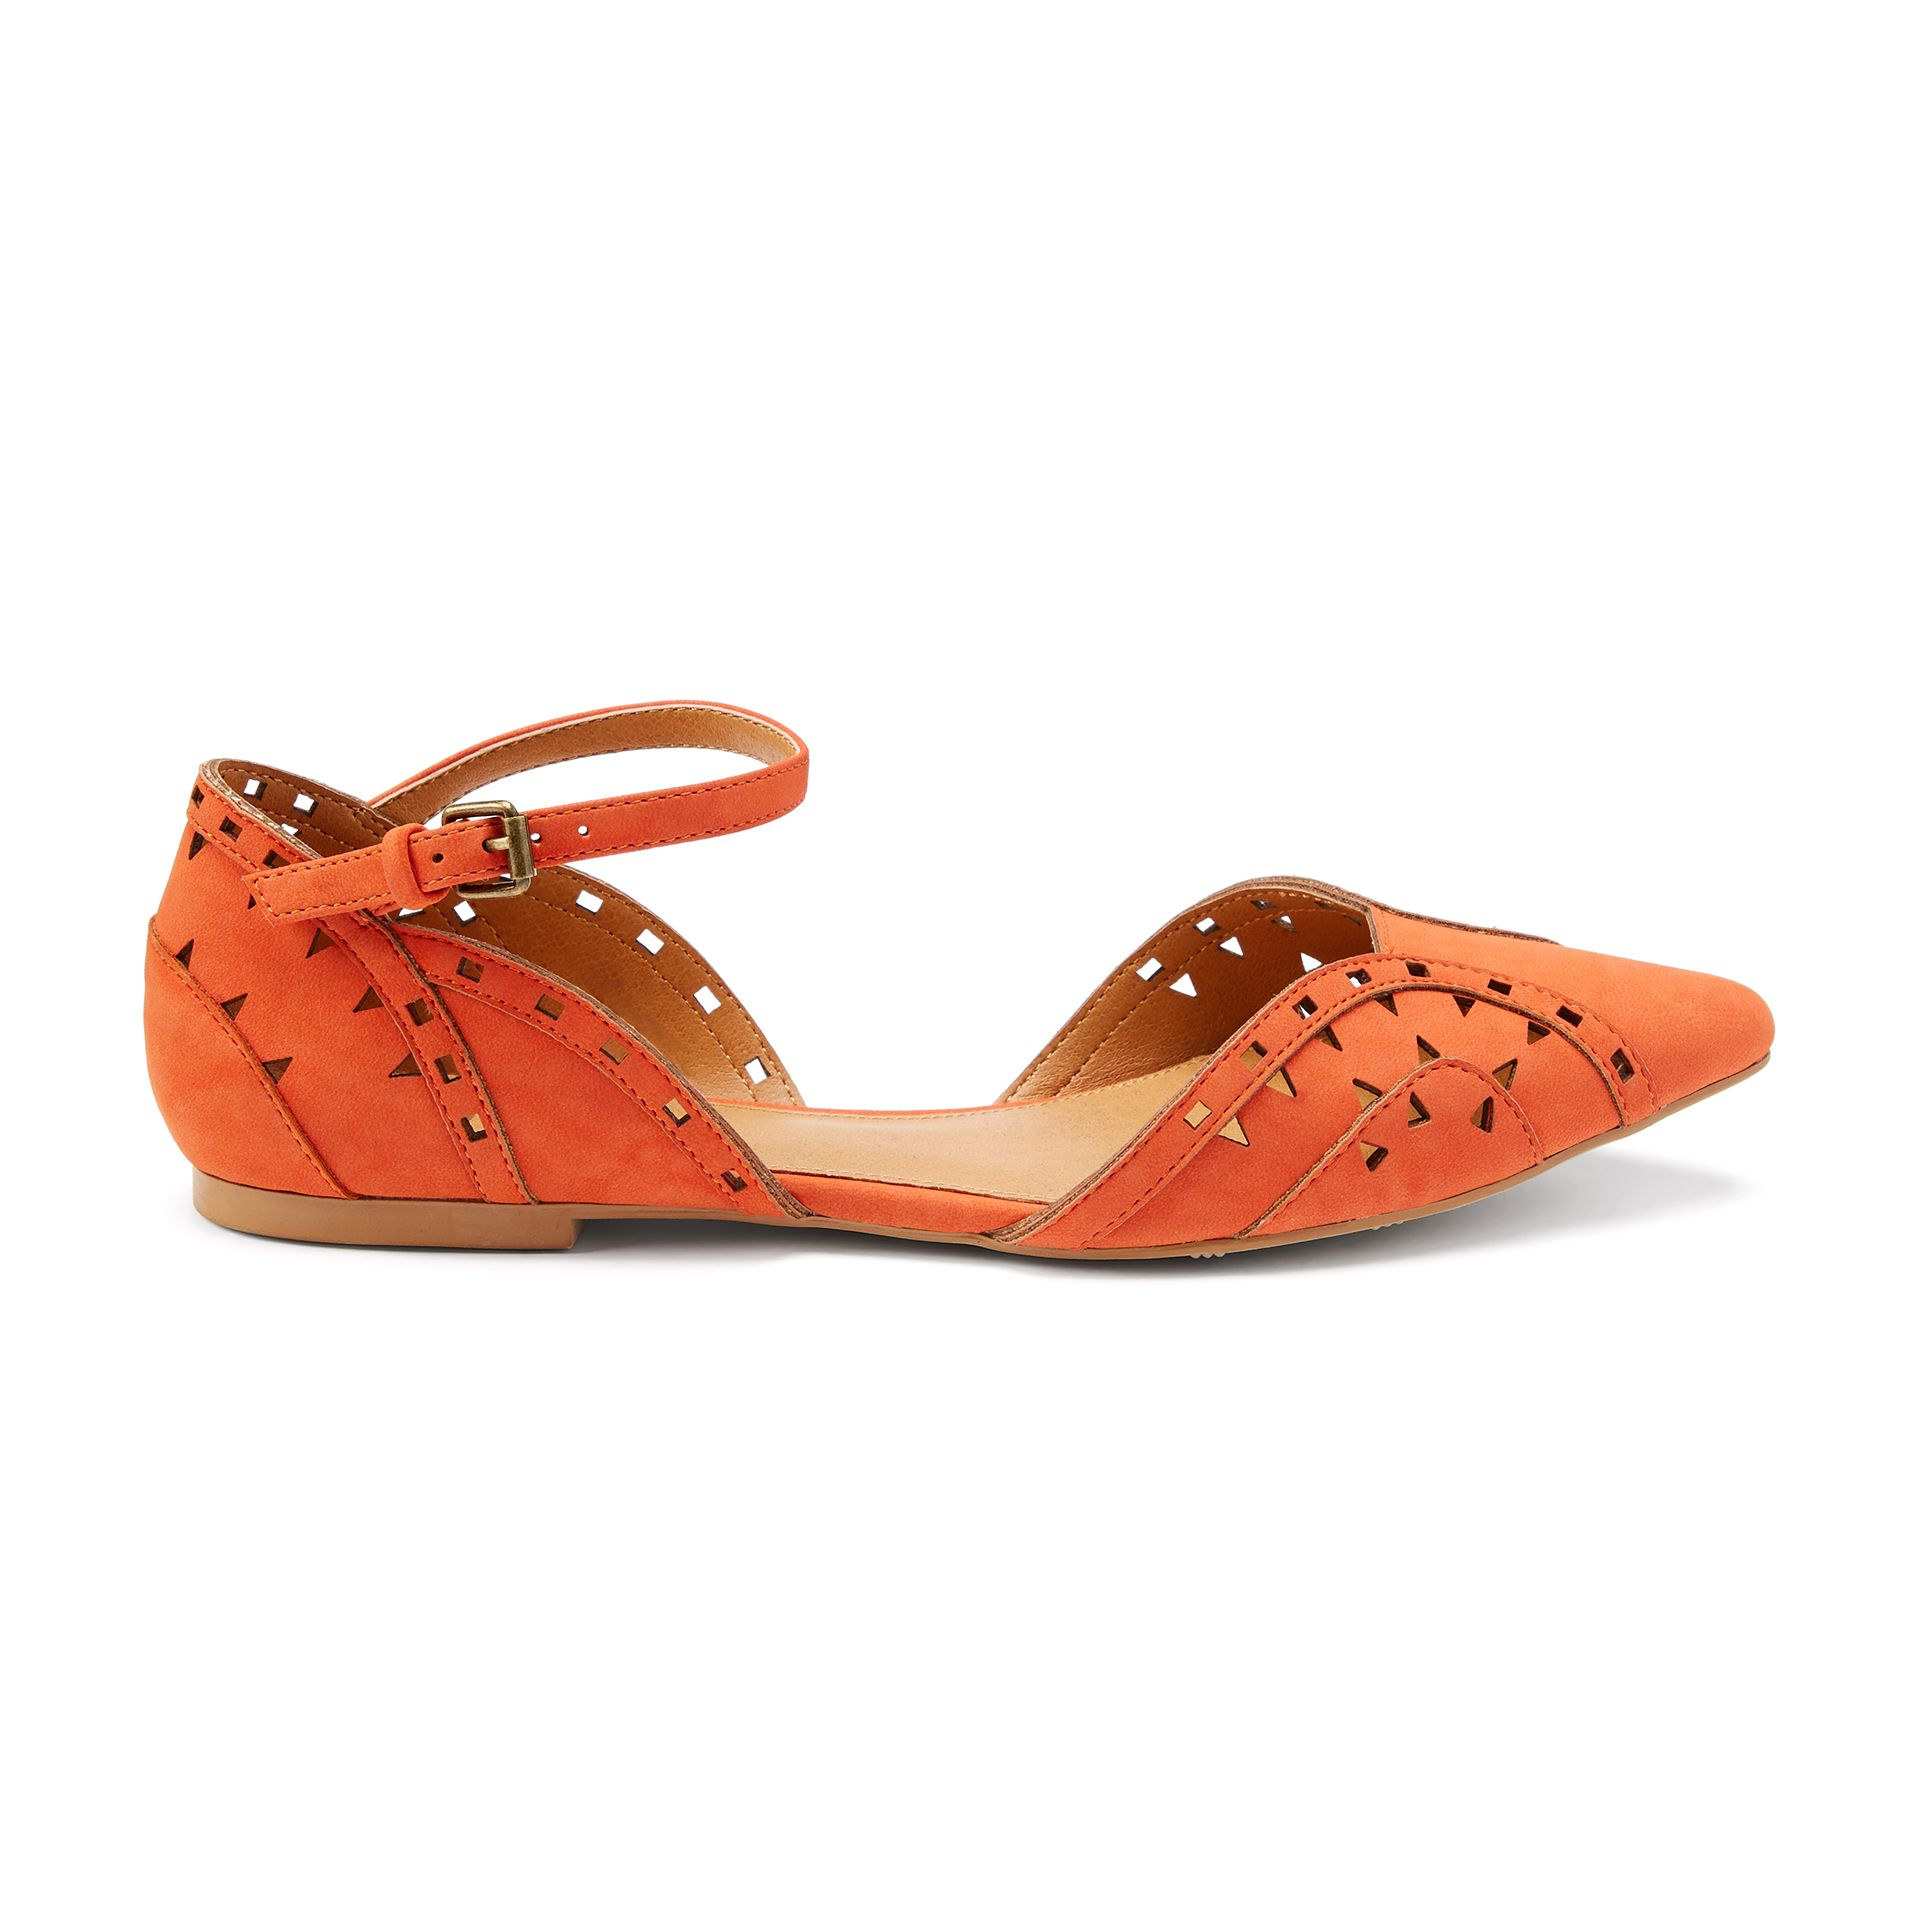 2c3bdf8ef06 Introducing Stitch Fix Shoes  Perforated Flats